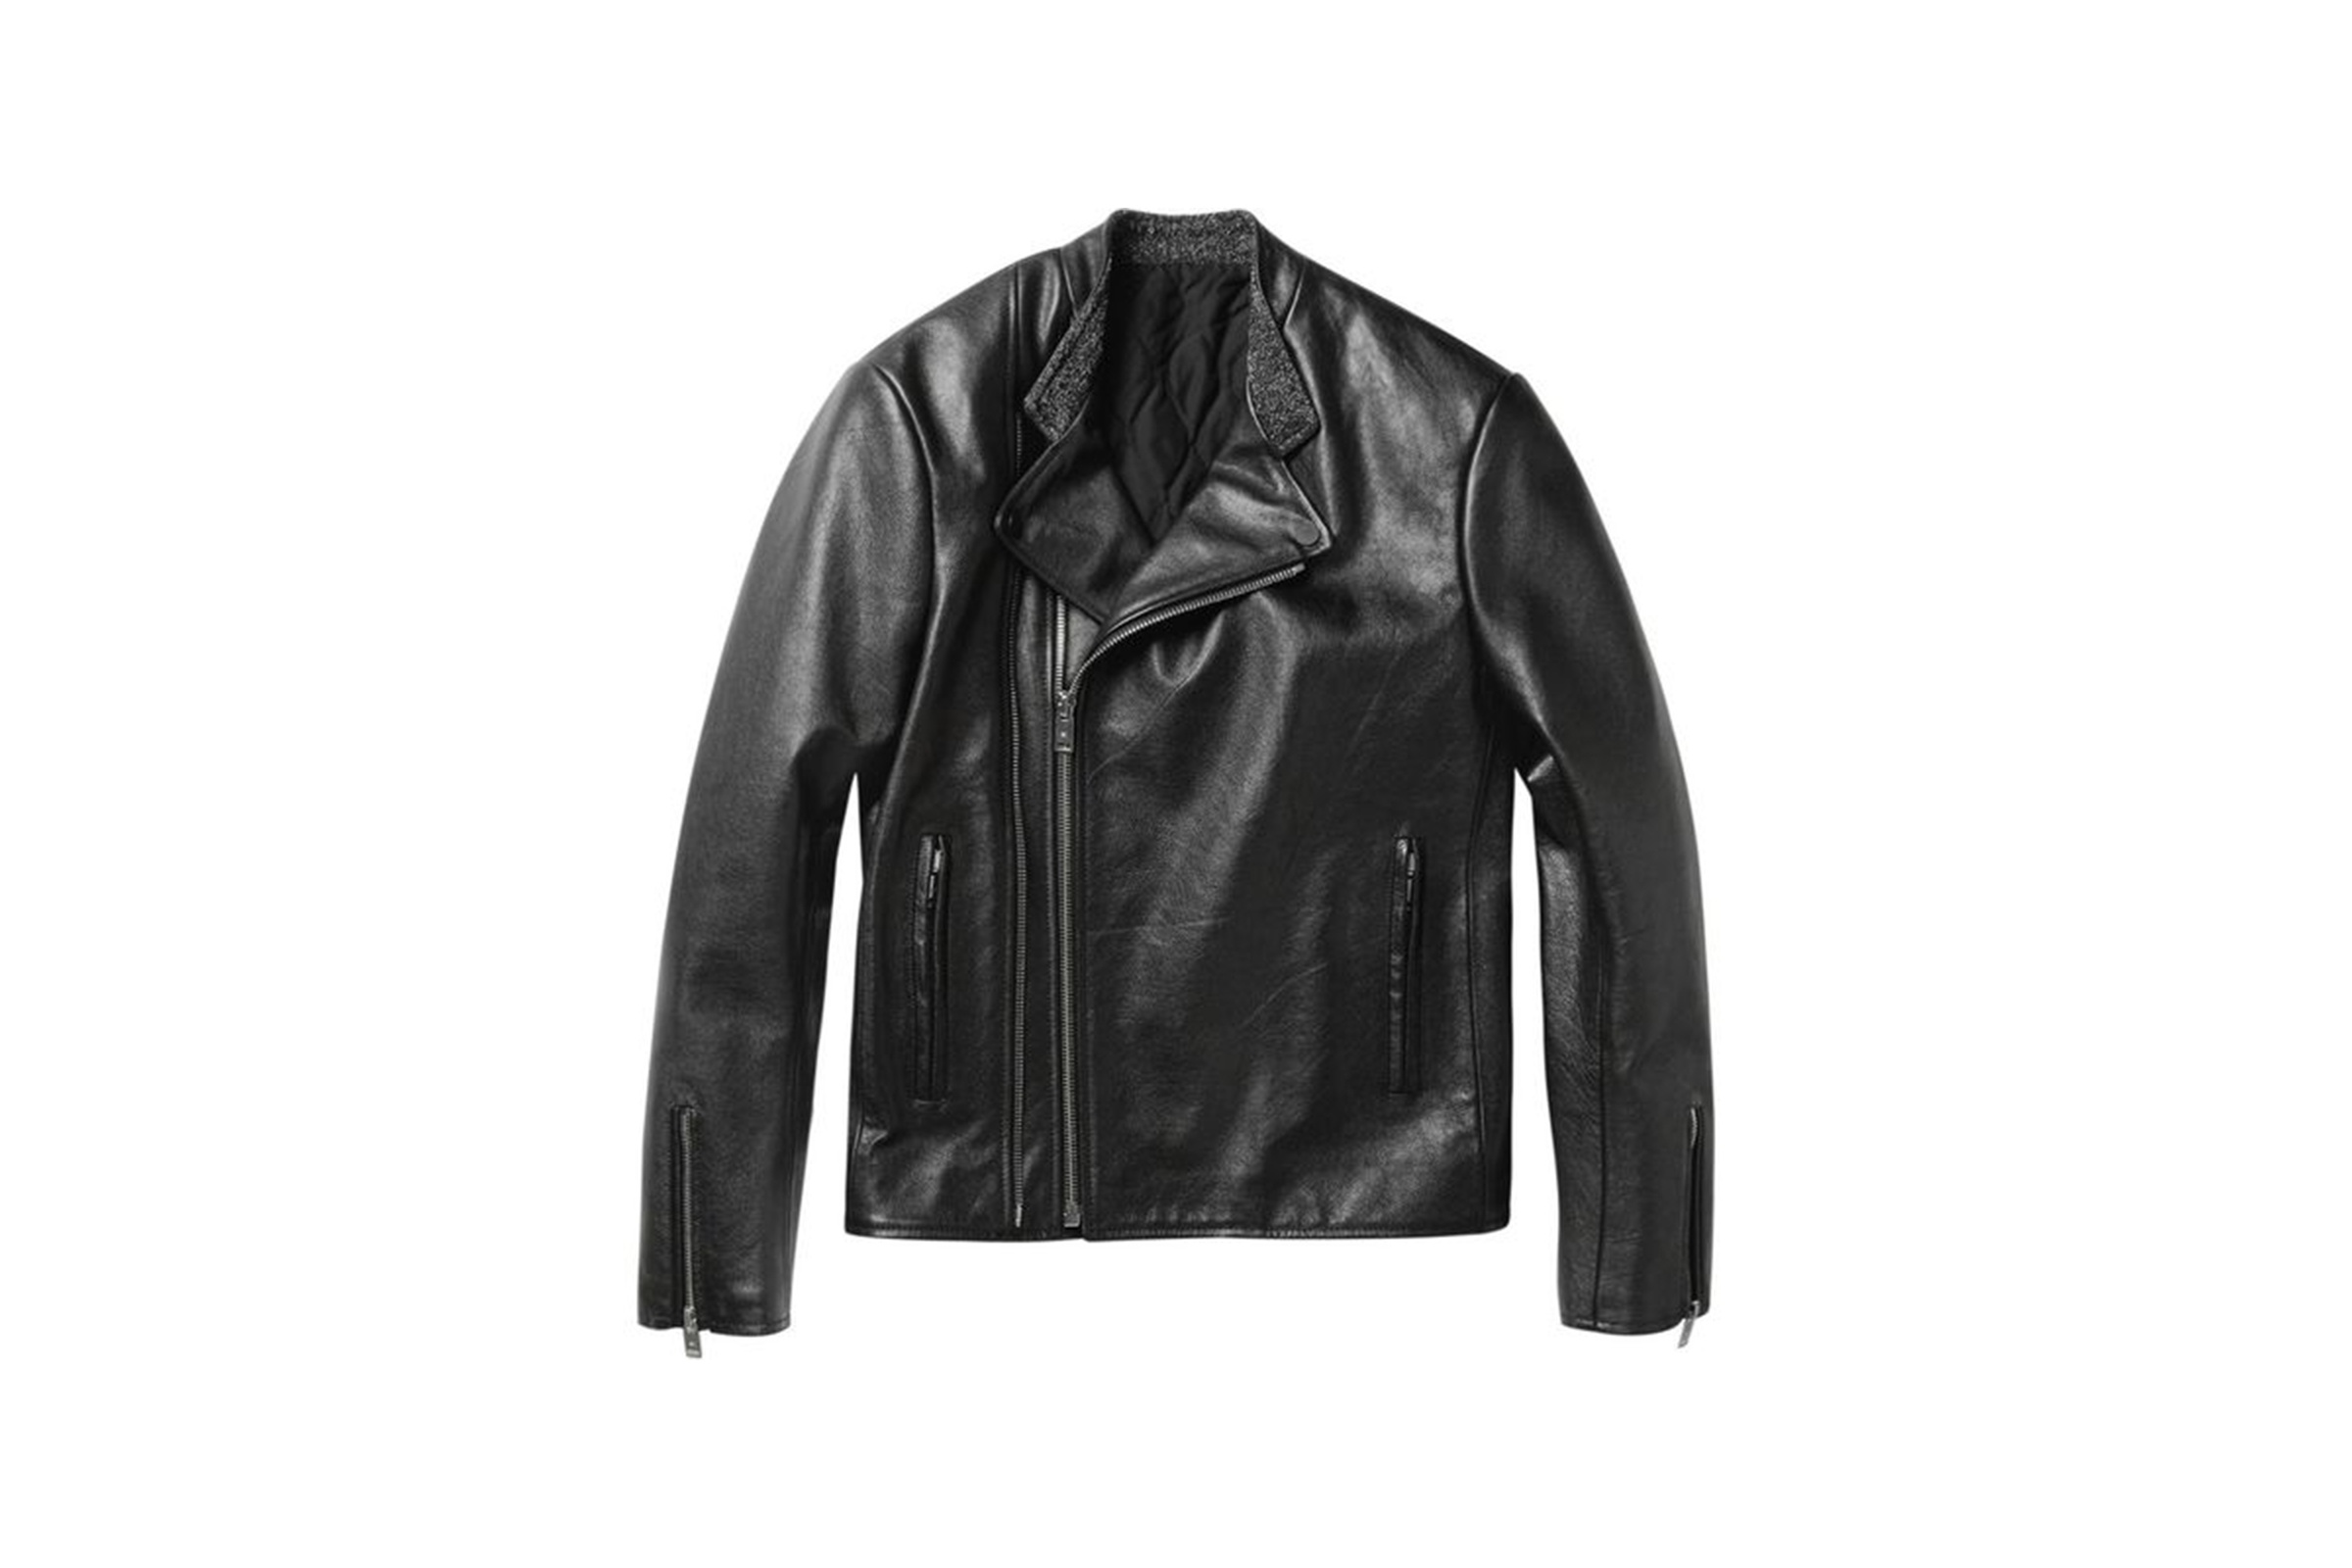 Leather jacket aesthetic - Balenciaga S Fall Winter 2012 Collection Saw The French Luxury Label Step Away From Its Ordinarily Tight Tailored Super Clean Aesthetic By Presenting A